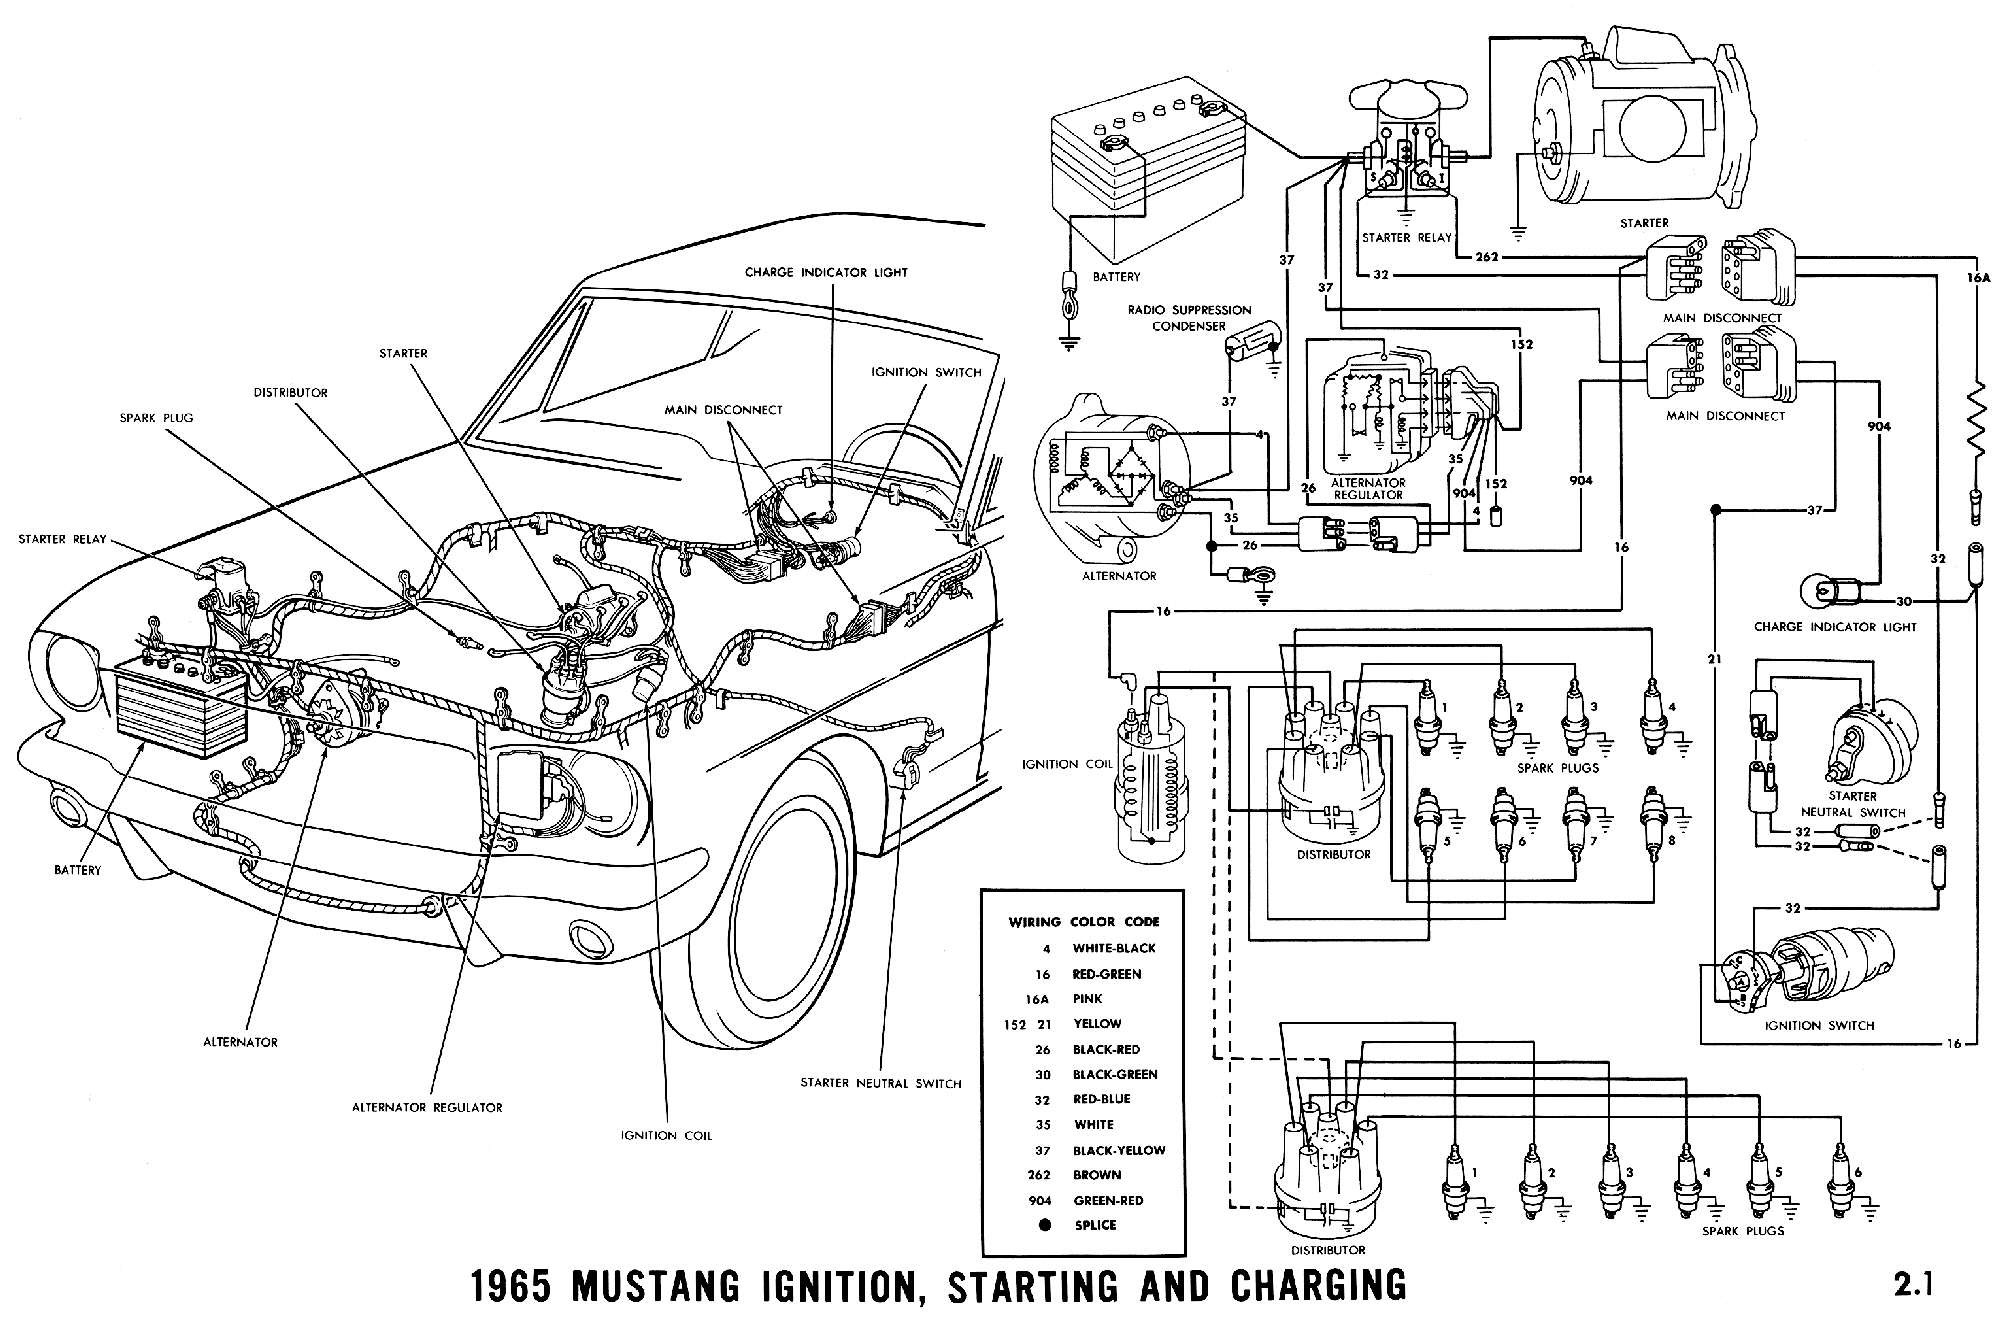 Diagram Of Car Engine Parts 2015 Mustang Engine Diagram Engine Car Parts  and Ponent Diagram Of